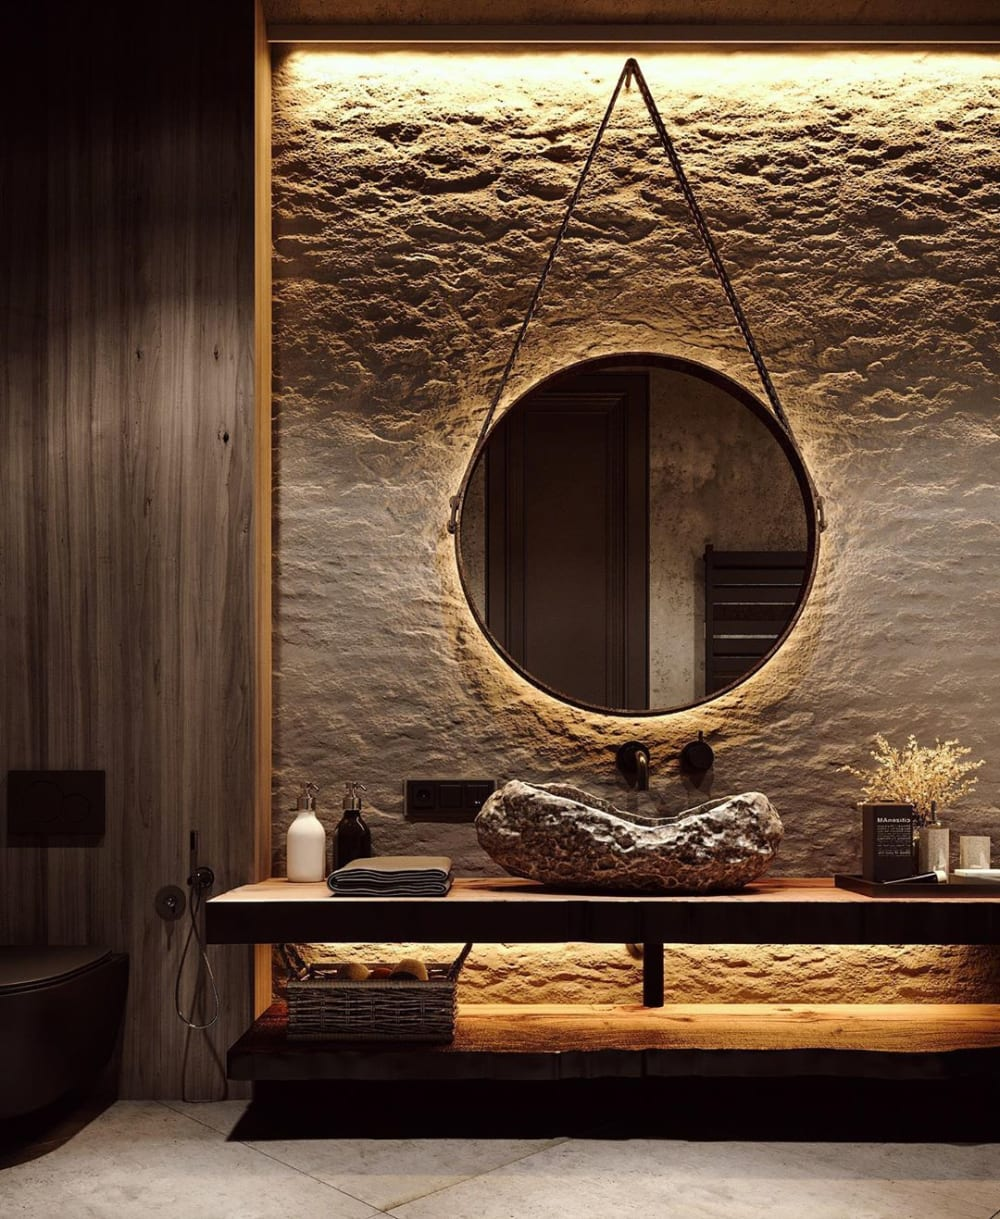 """Contemporary bathroom with a dazzling stone wall and a stone sink.<span class=""""sr-only""""> (opened in a new window/tab)</span>"""